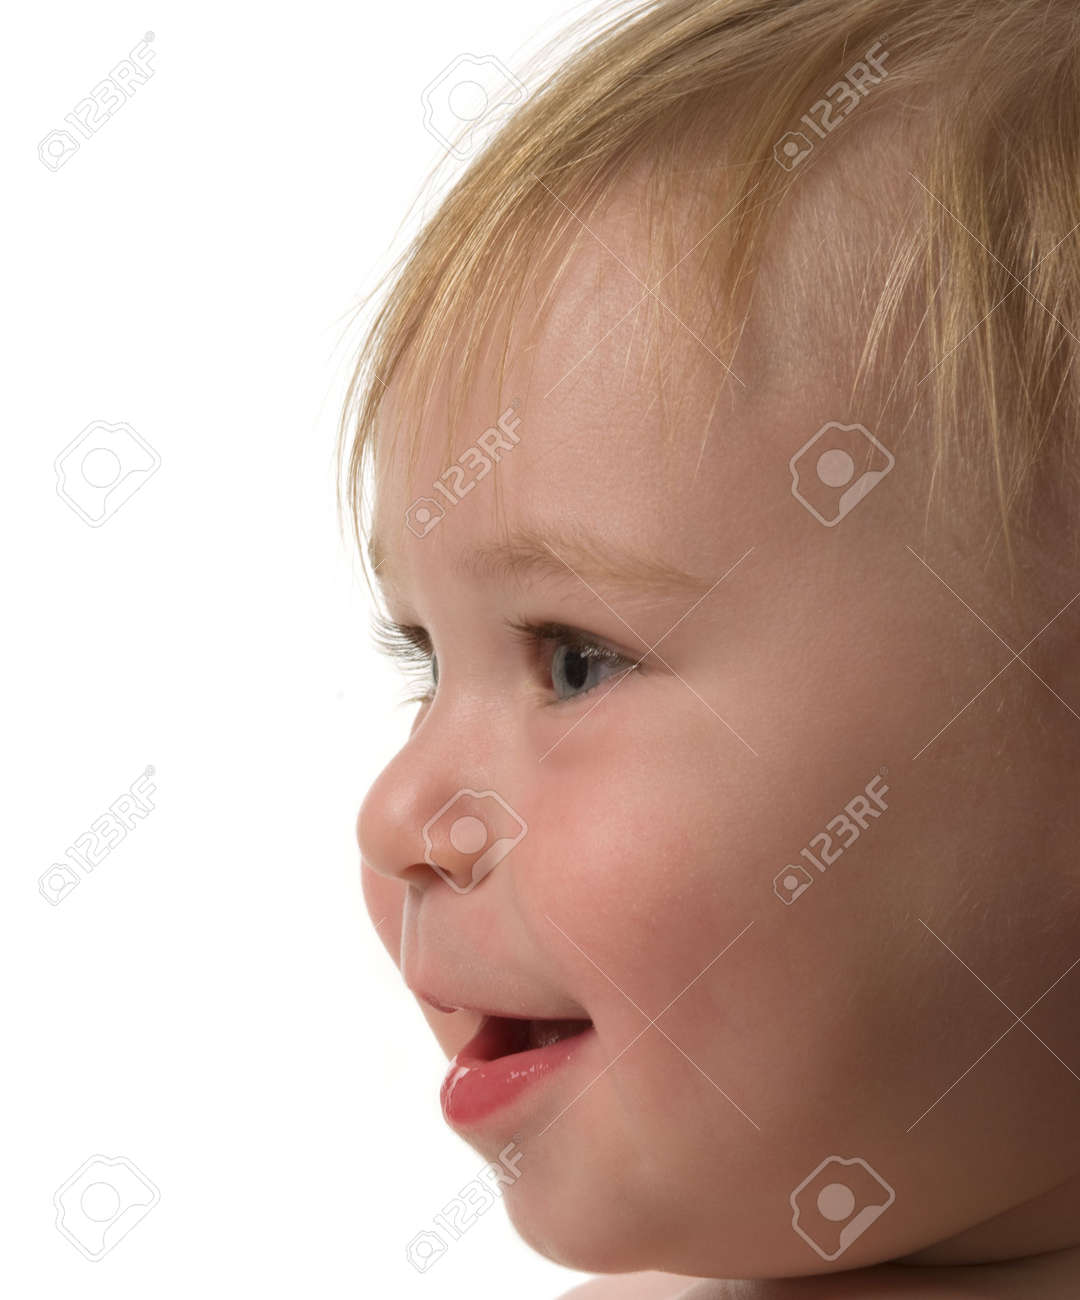 very cute baby boy with copy space stock photo, picture and royalty